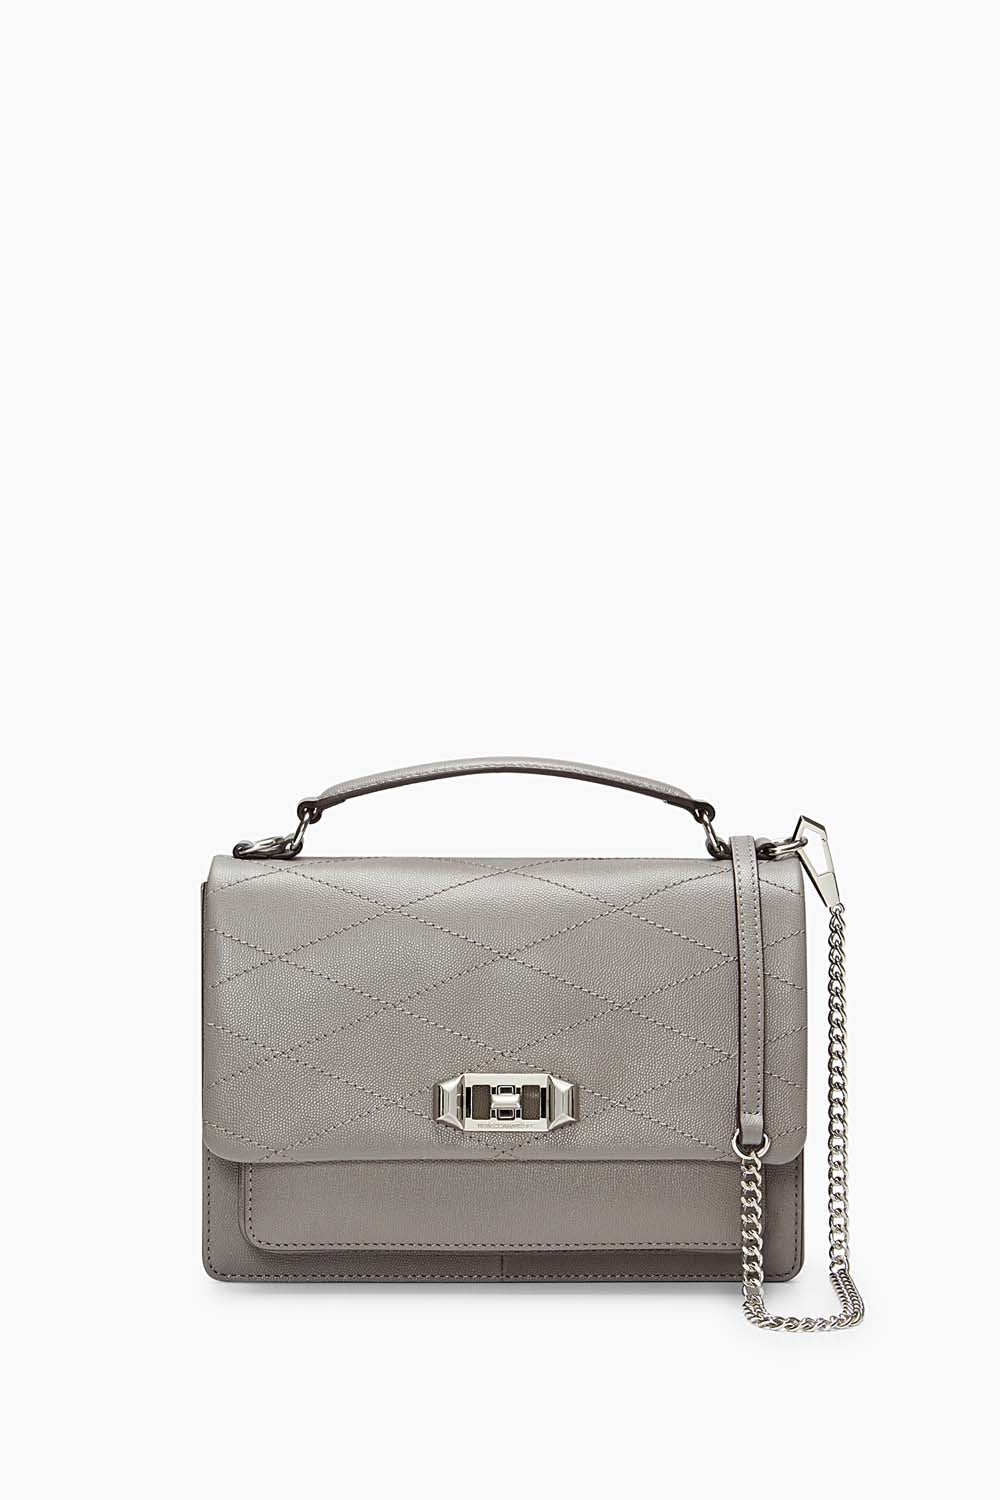 51970b2f5e Je t aime Medium Crossbody – Rebecca Minkoff